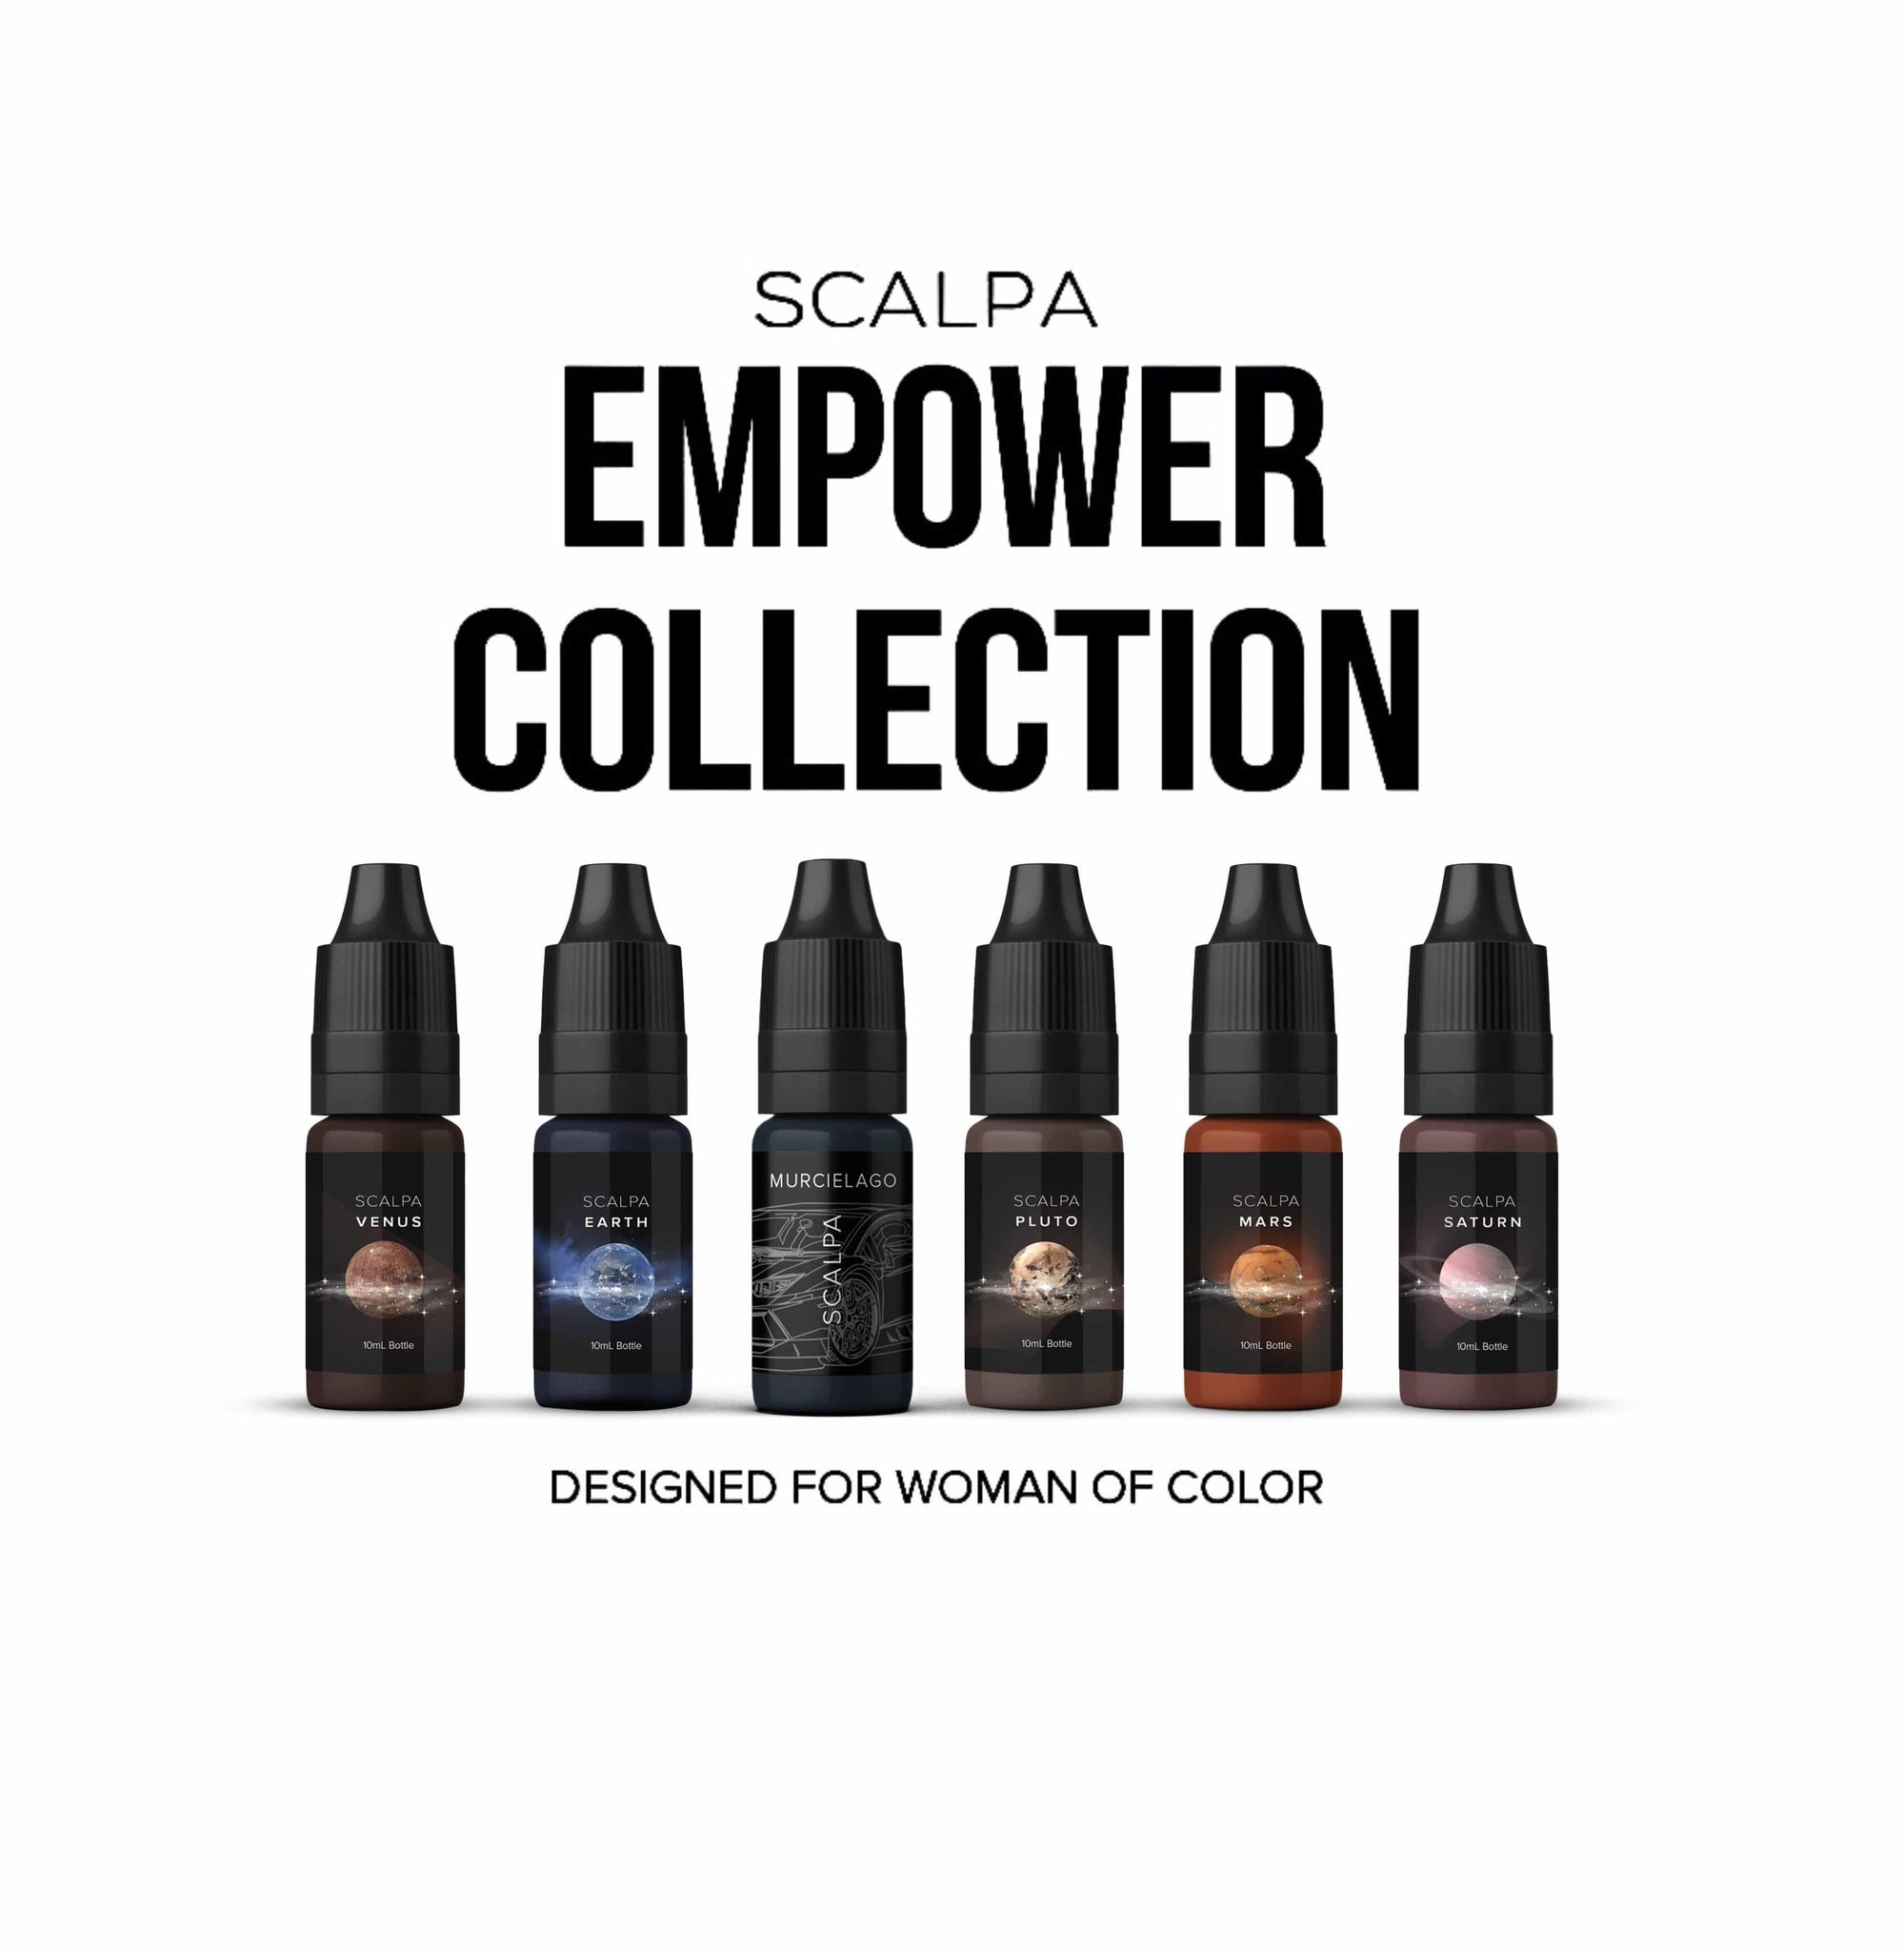 Empower Collection (Designed For Women of Color)